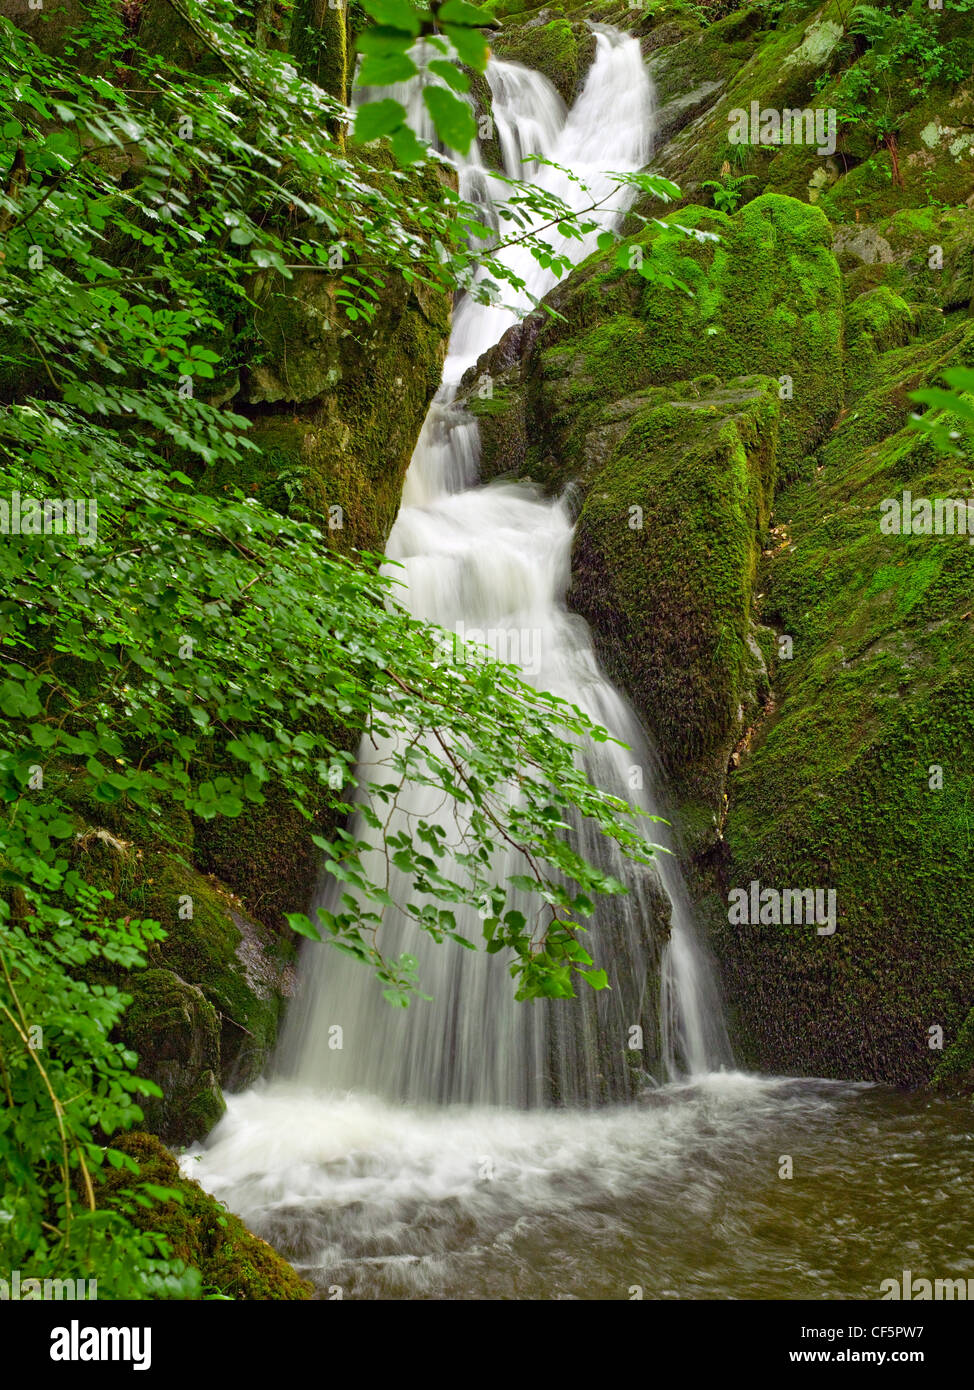 Stock Ghyll Force near Ambleside. - Stock Image